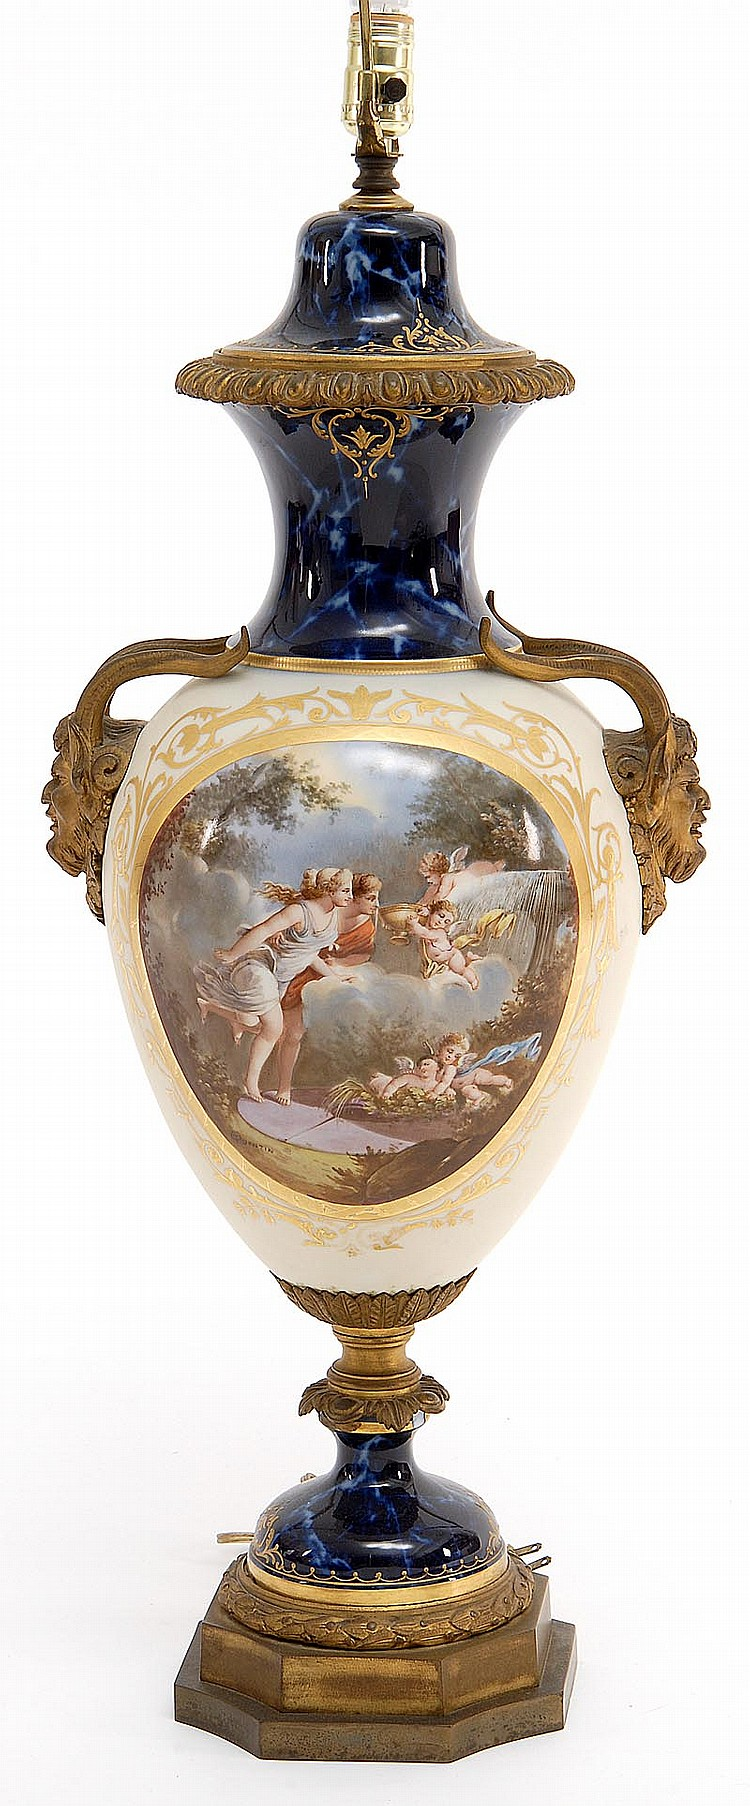 ORMOLU-MOUNTED PORCELAIN URN In the manner of Royal Vienna with decoration of cherubs and classical maidens. Satyr handles. Reverse...